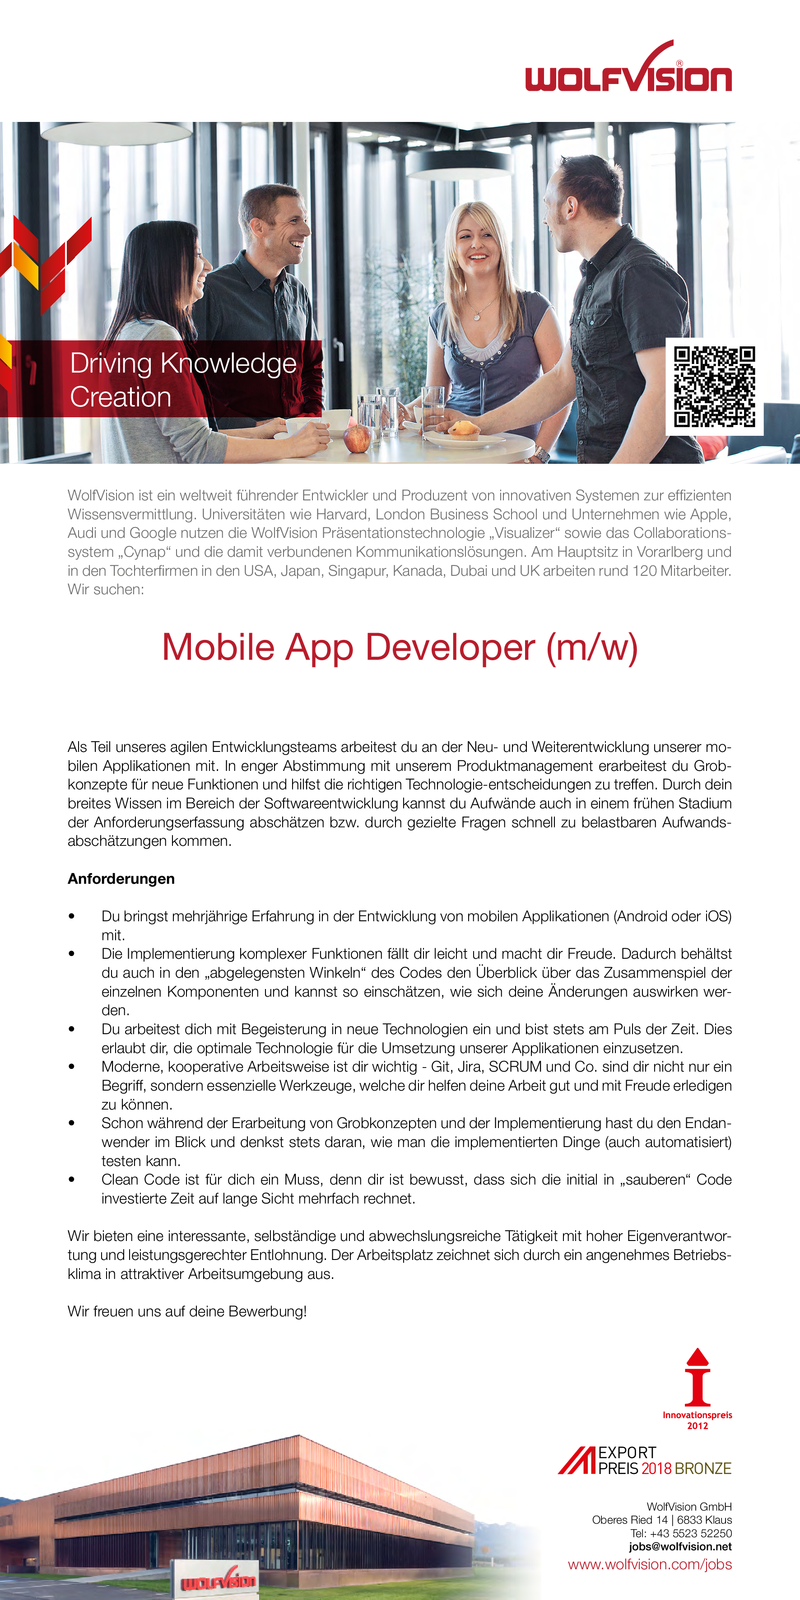 Mobile App Developer (m/w)